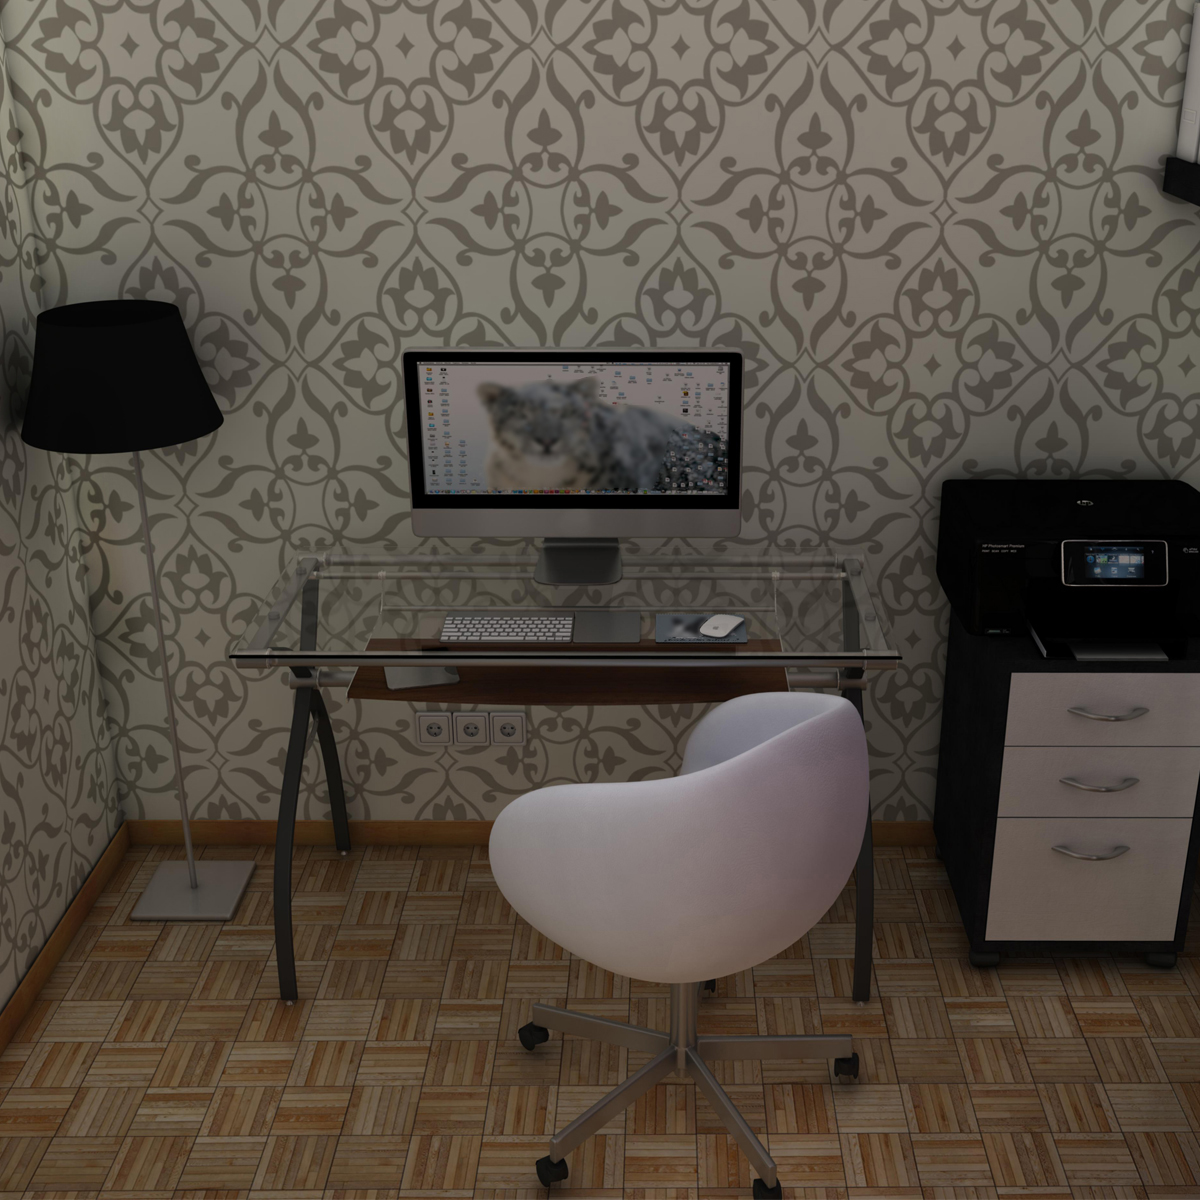 office room 3d model 3ds max fbx c4d ma mb obj 159570